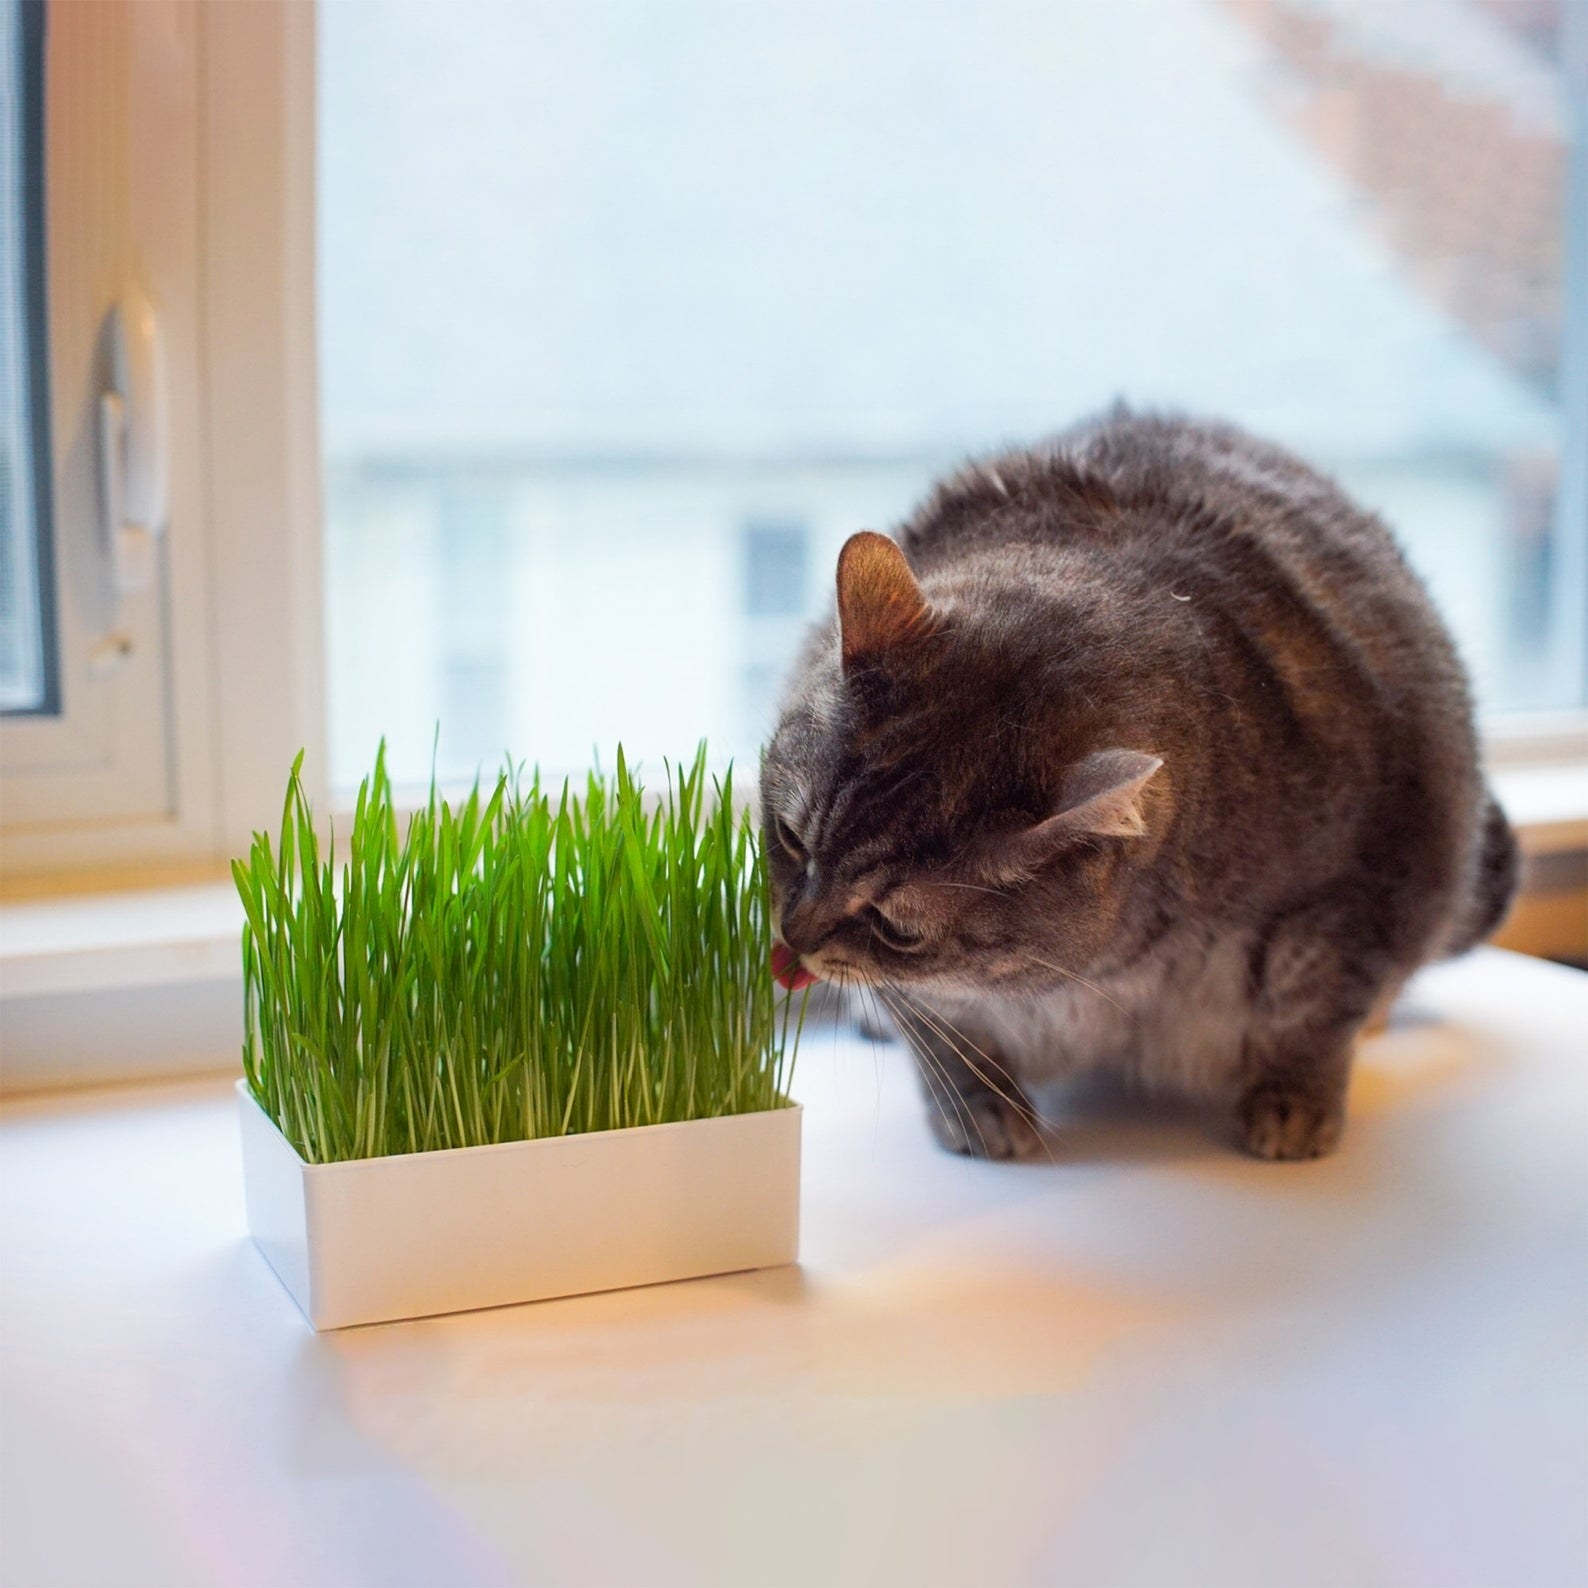 A cat is licking cat grass from a white planter